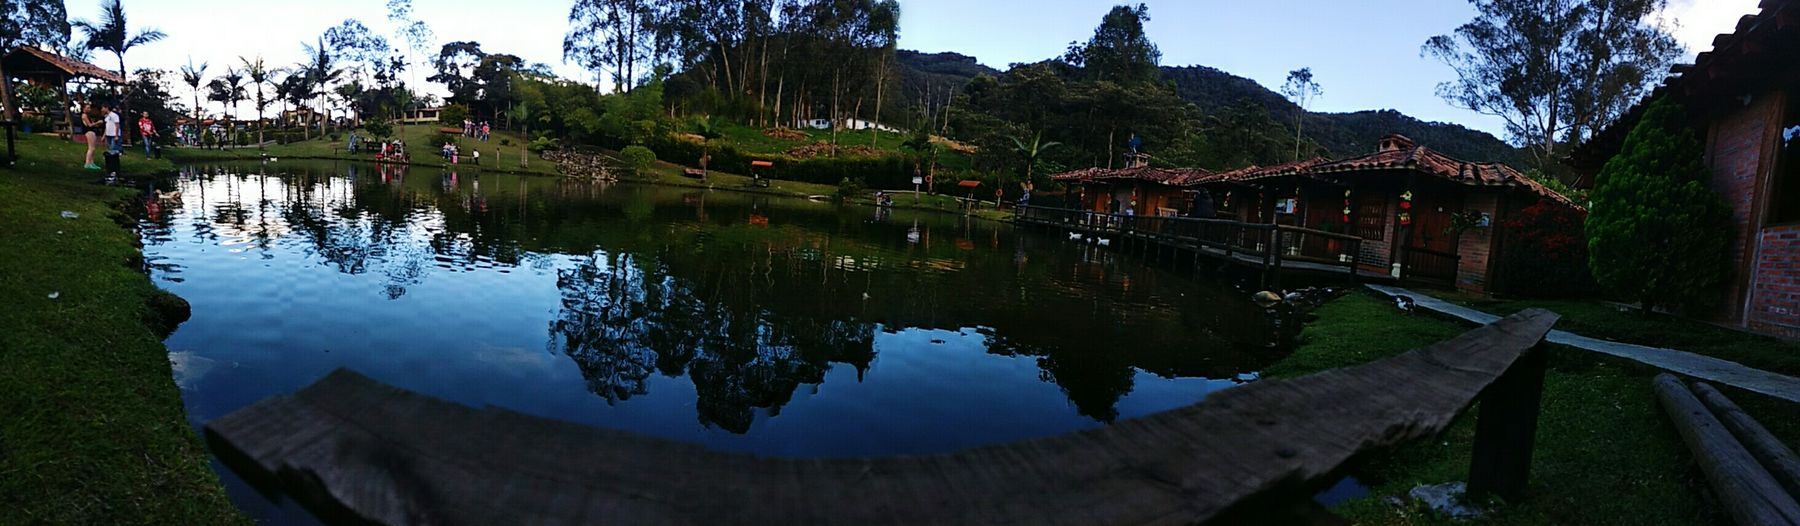 Reflection Sky Water Lake Outdoors No People Tree Nature Reflection Lake Day Cultures Huaweiphotography Misiones Mision  Huawei P9 Plus My Year My View Huawei P9. Nature